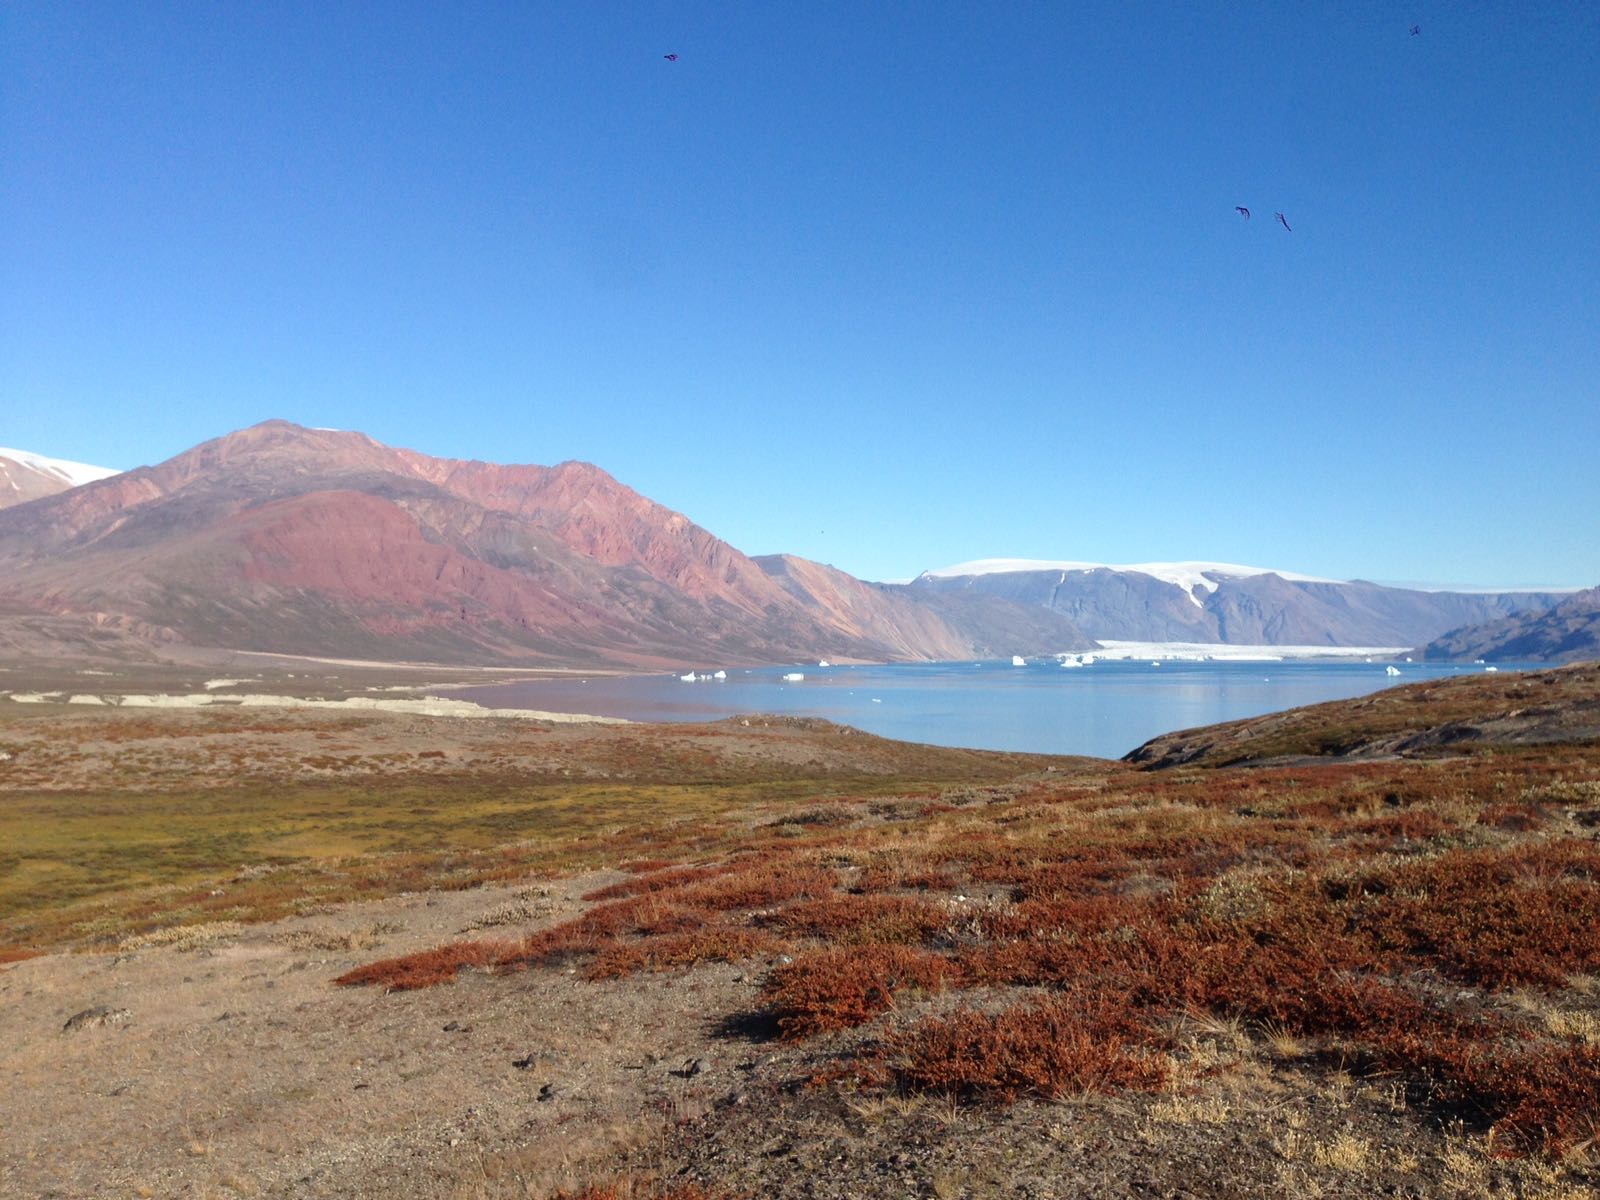 Greenland's colorful tundra and pristine bays make for great polar photography.